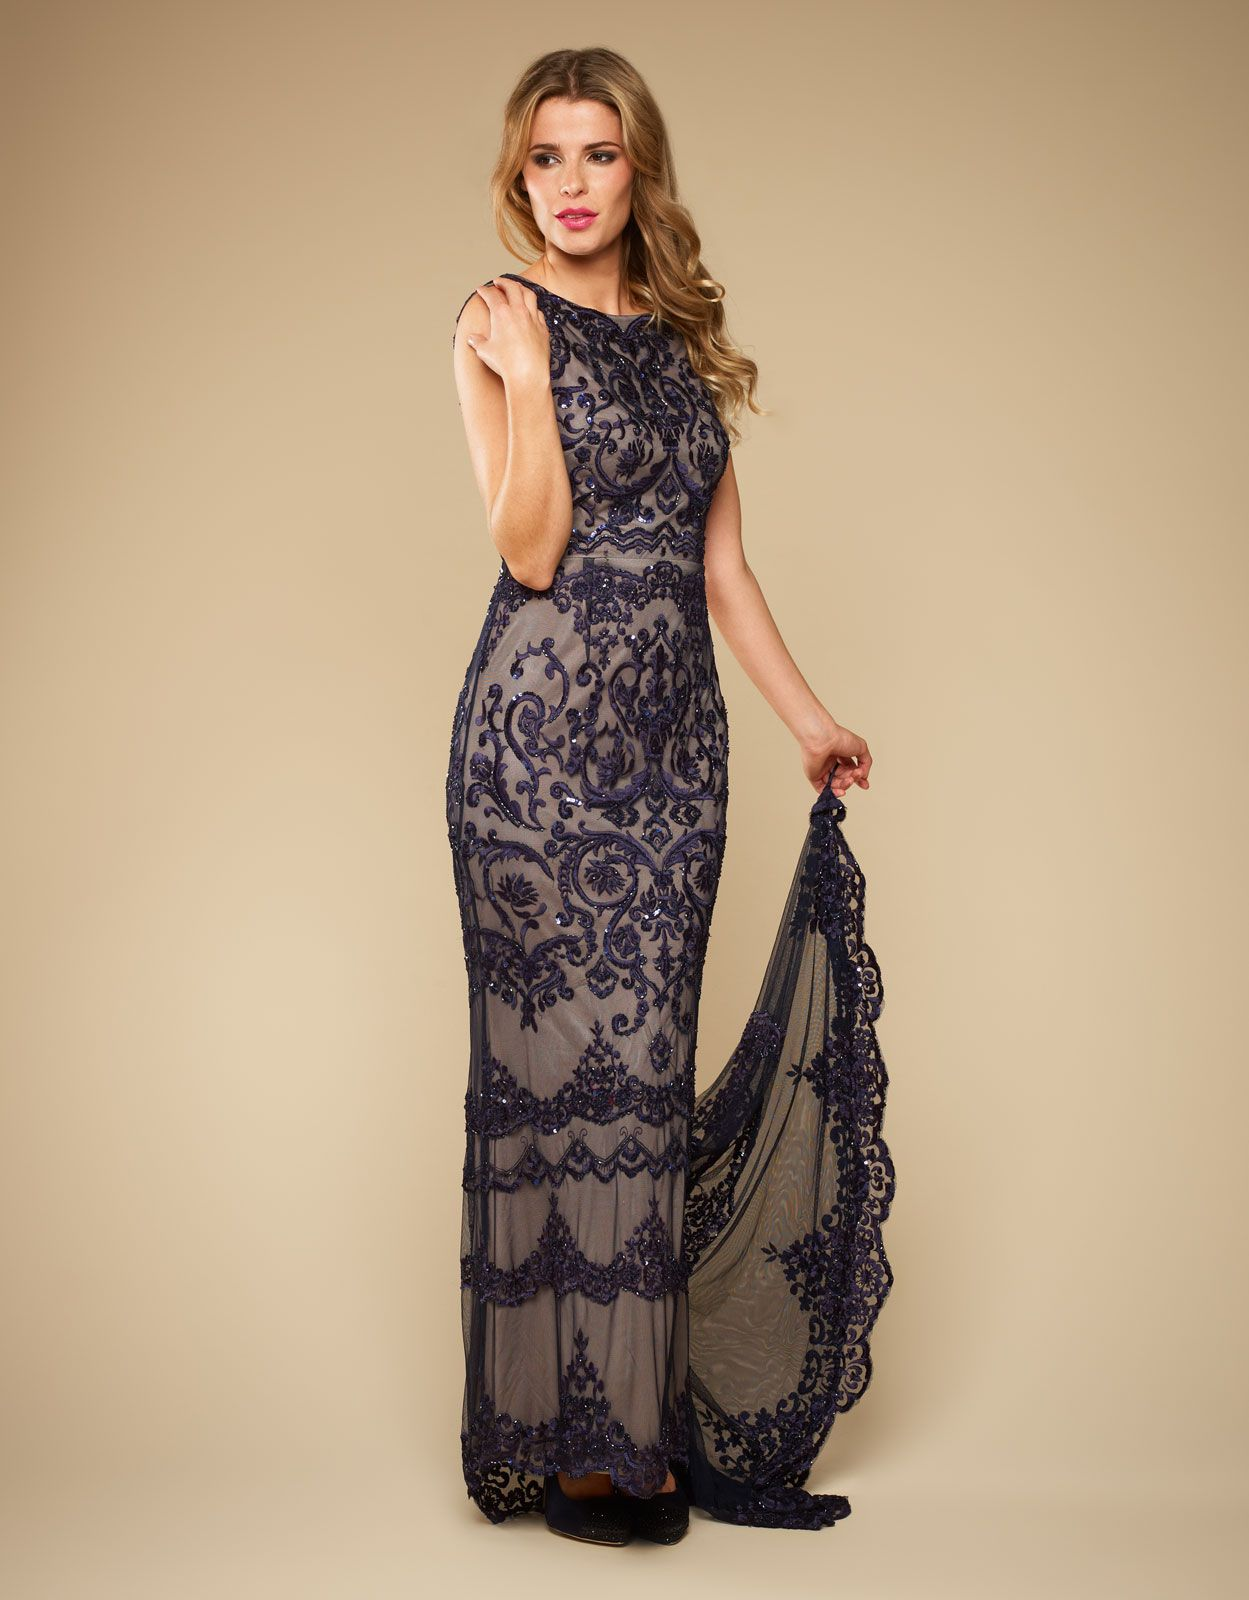 Long summer evening dresses uk online